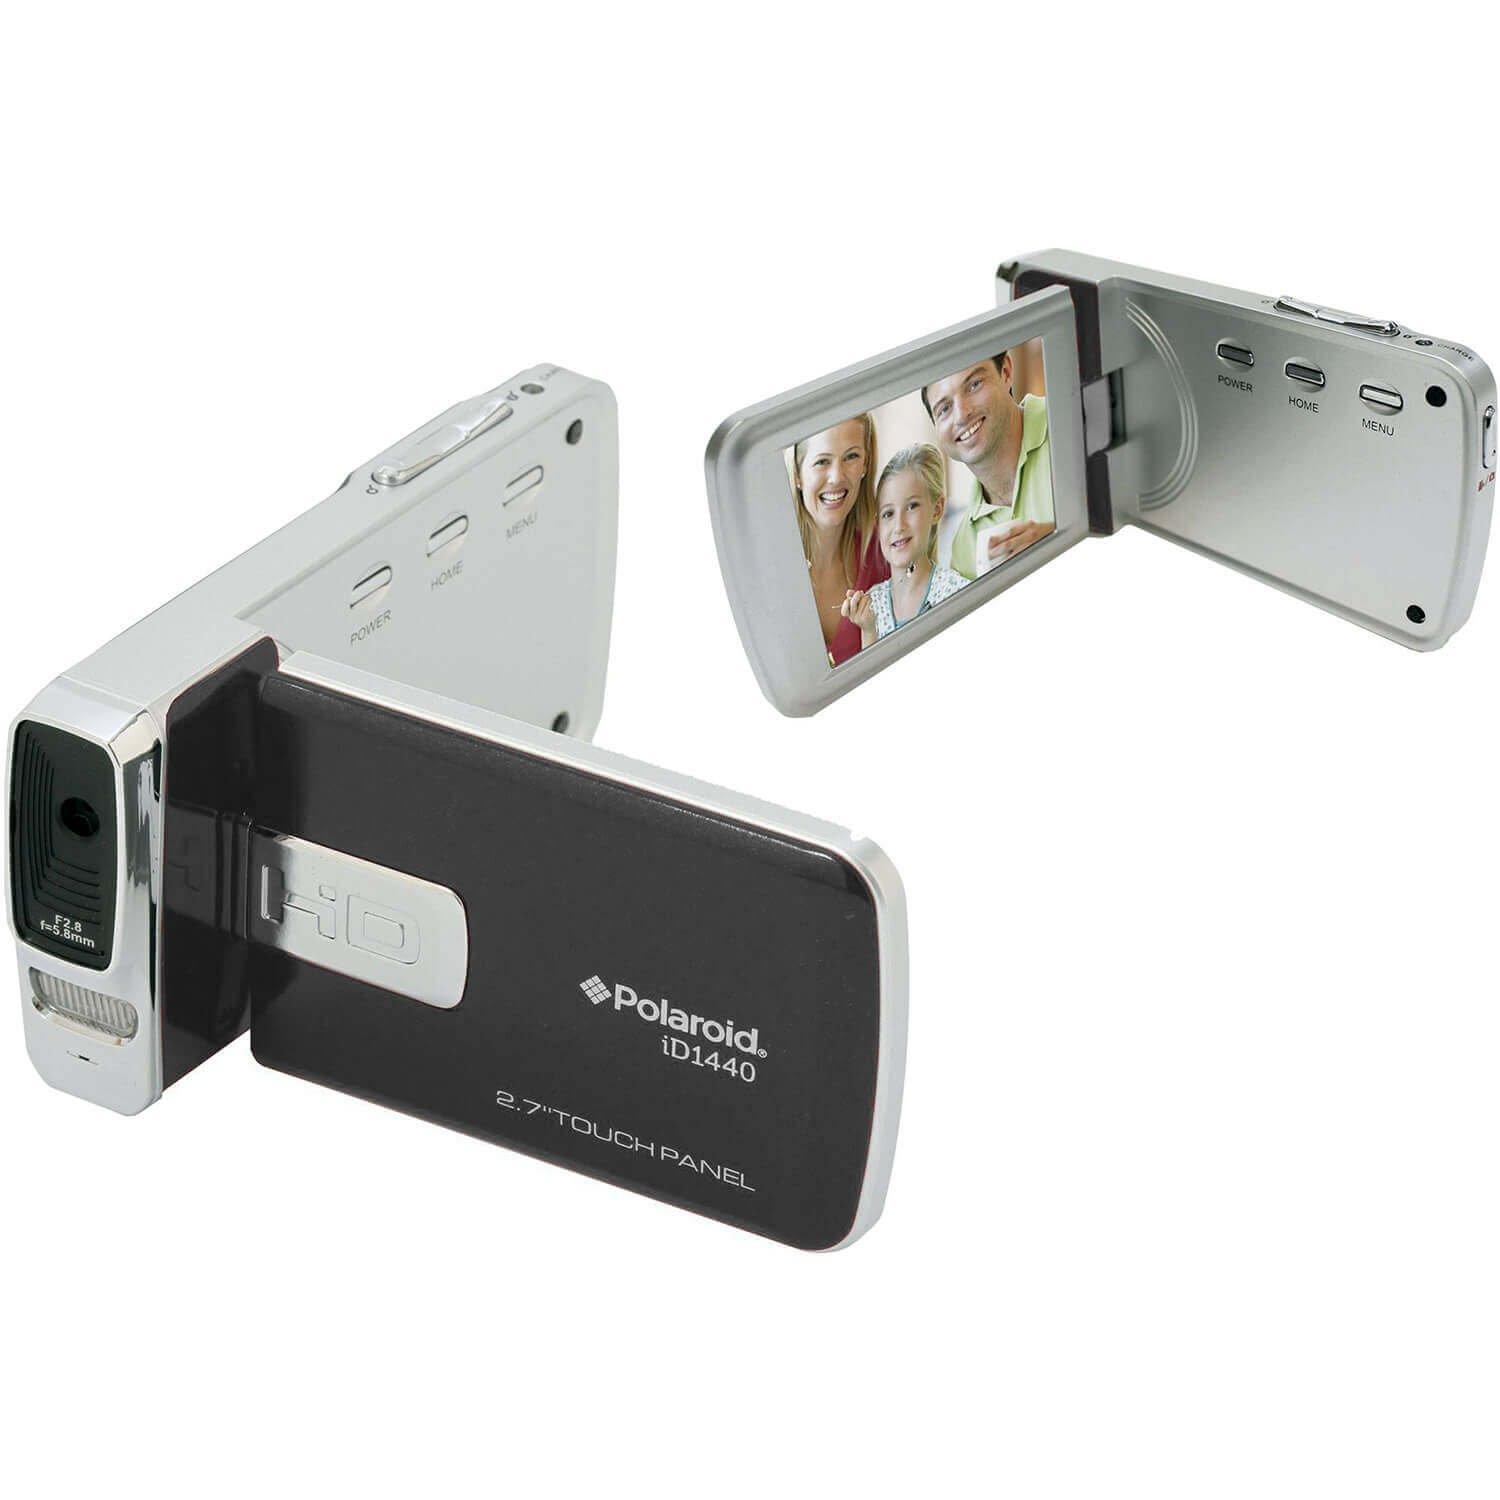 Polaroid ID1440-BLK-KHL Polaroid 14 MP 4x Zoom Digital Camcorder with 2.7-Inch LCD Screen (Black)